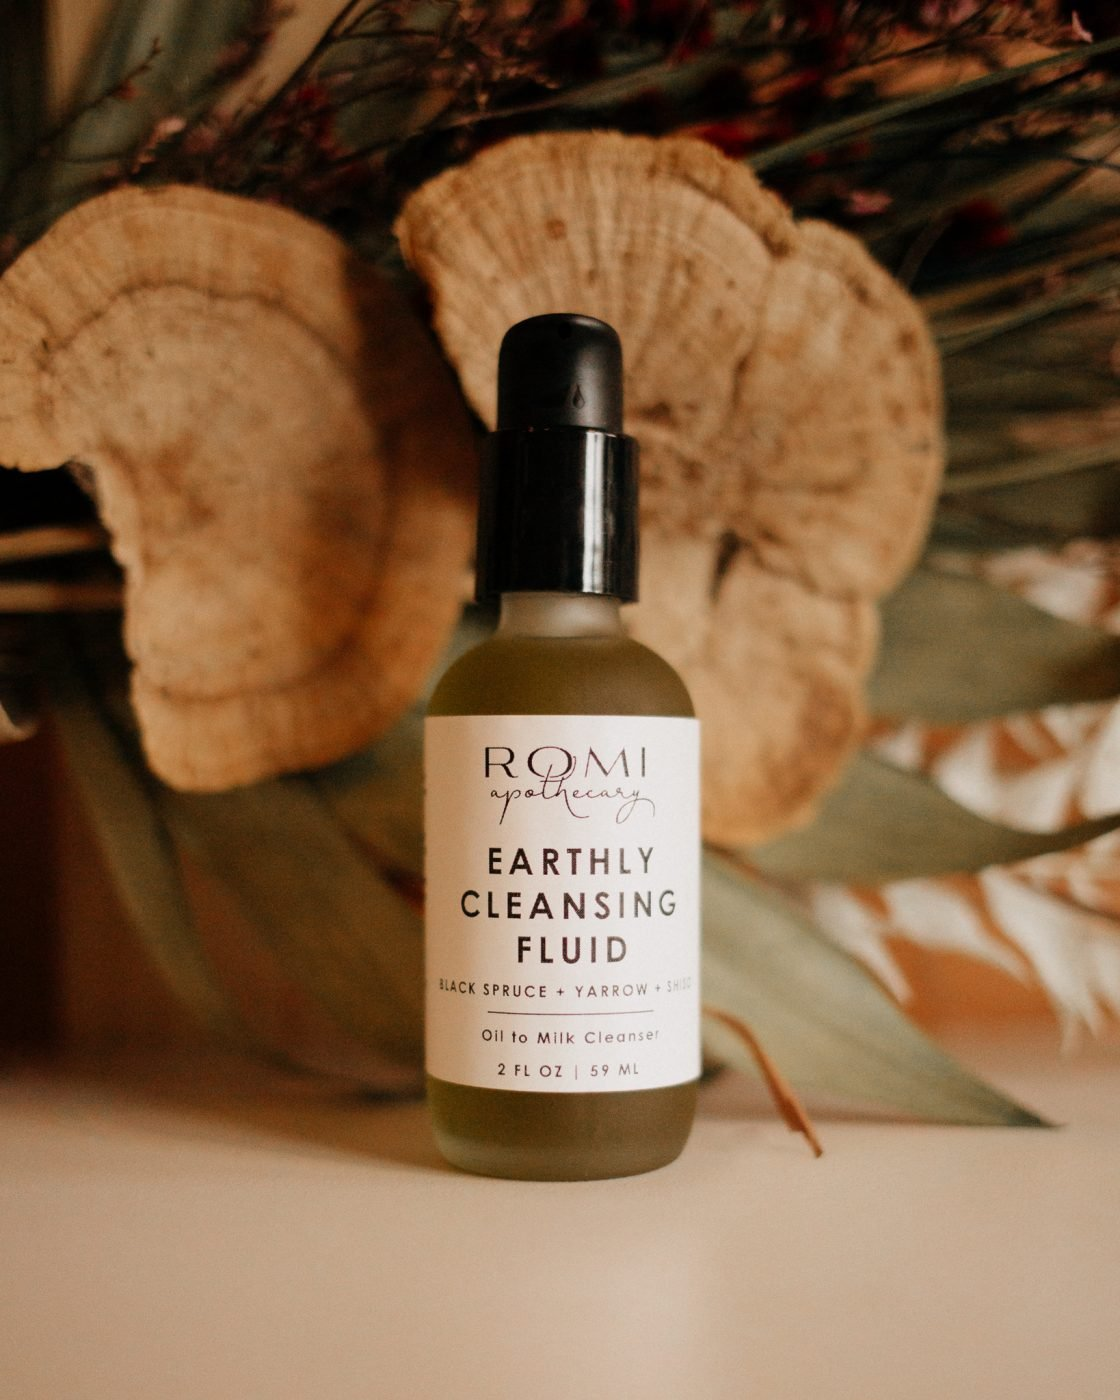 earthly cleansing fluid from romi apothecary